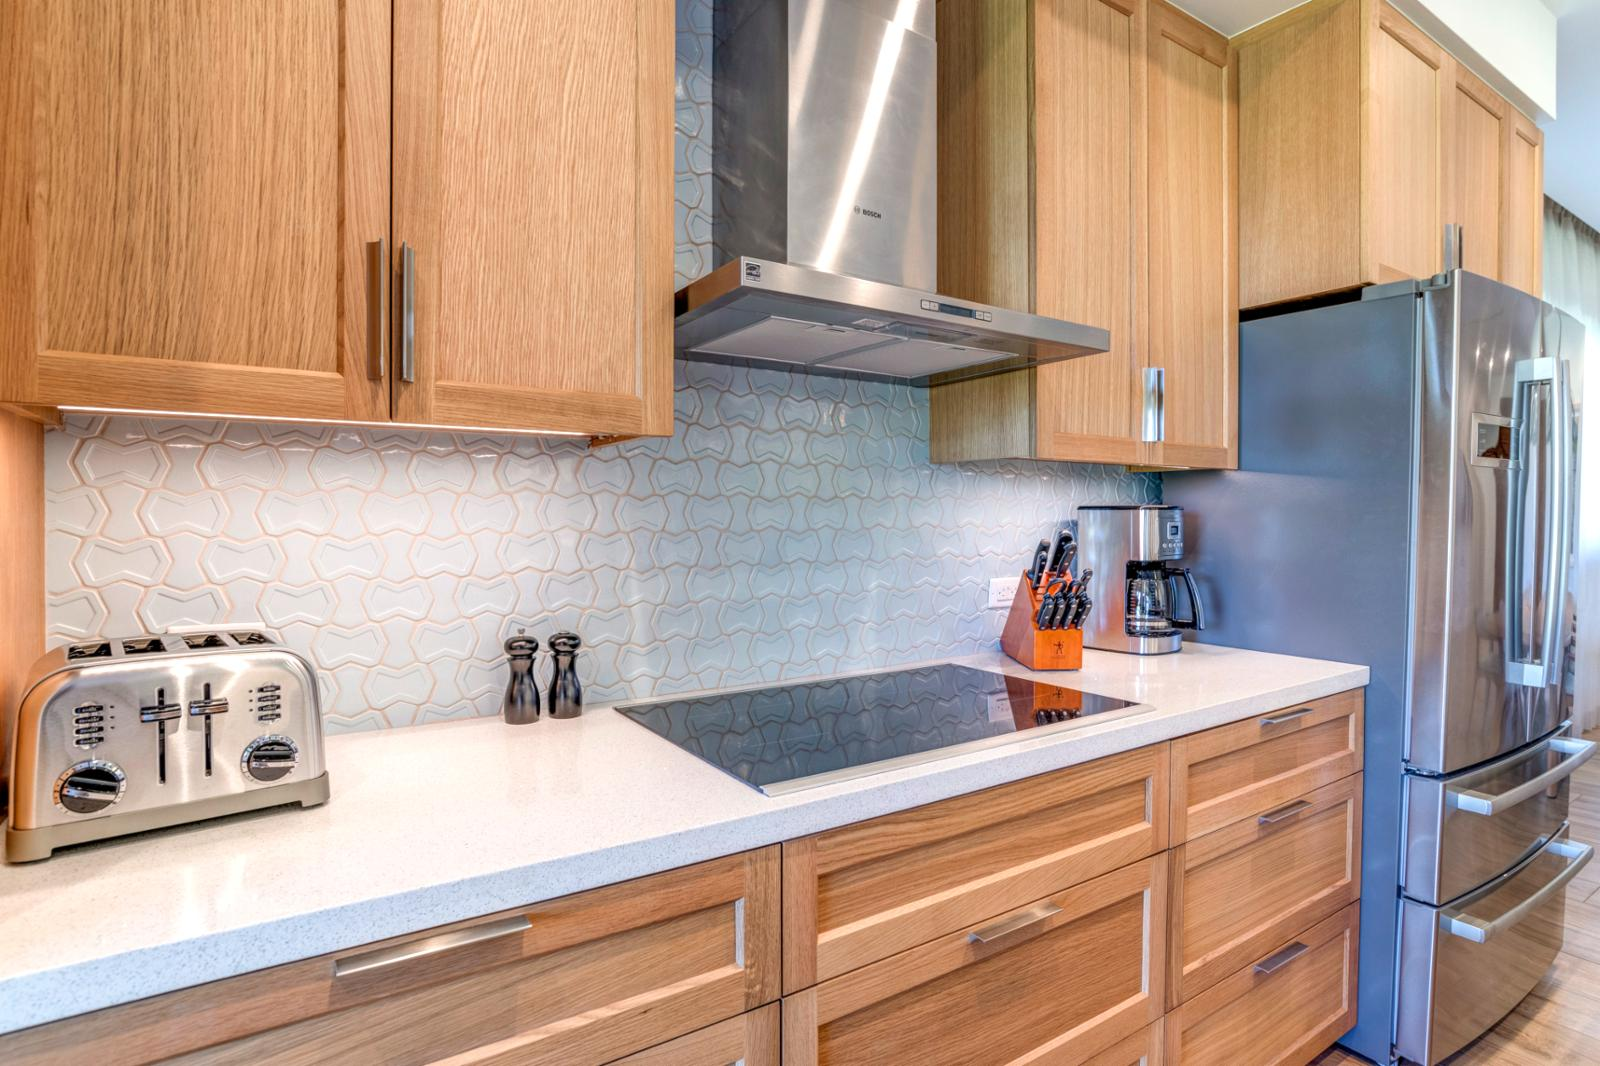 Kitchen has all appliances you will need for cooking delicious meals at home!